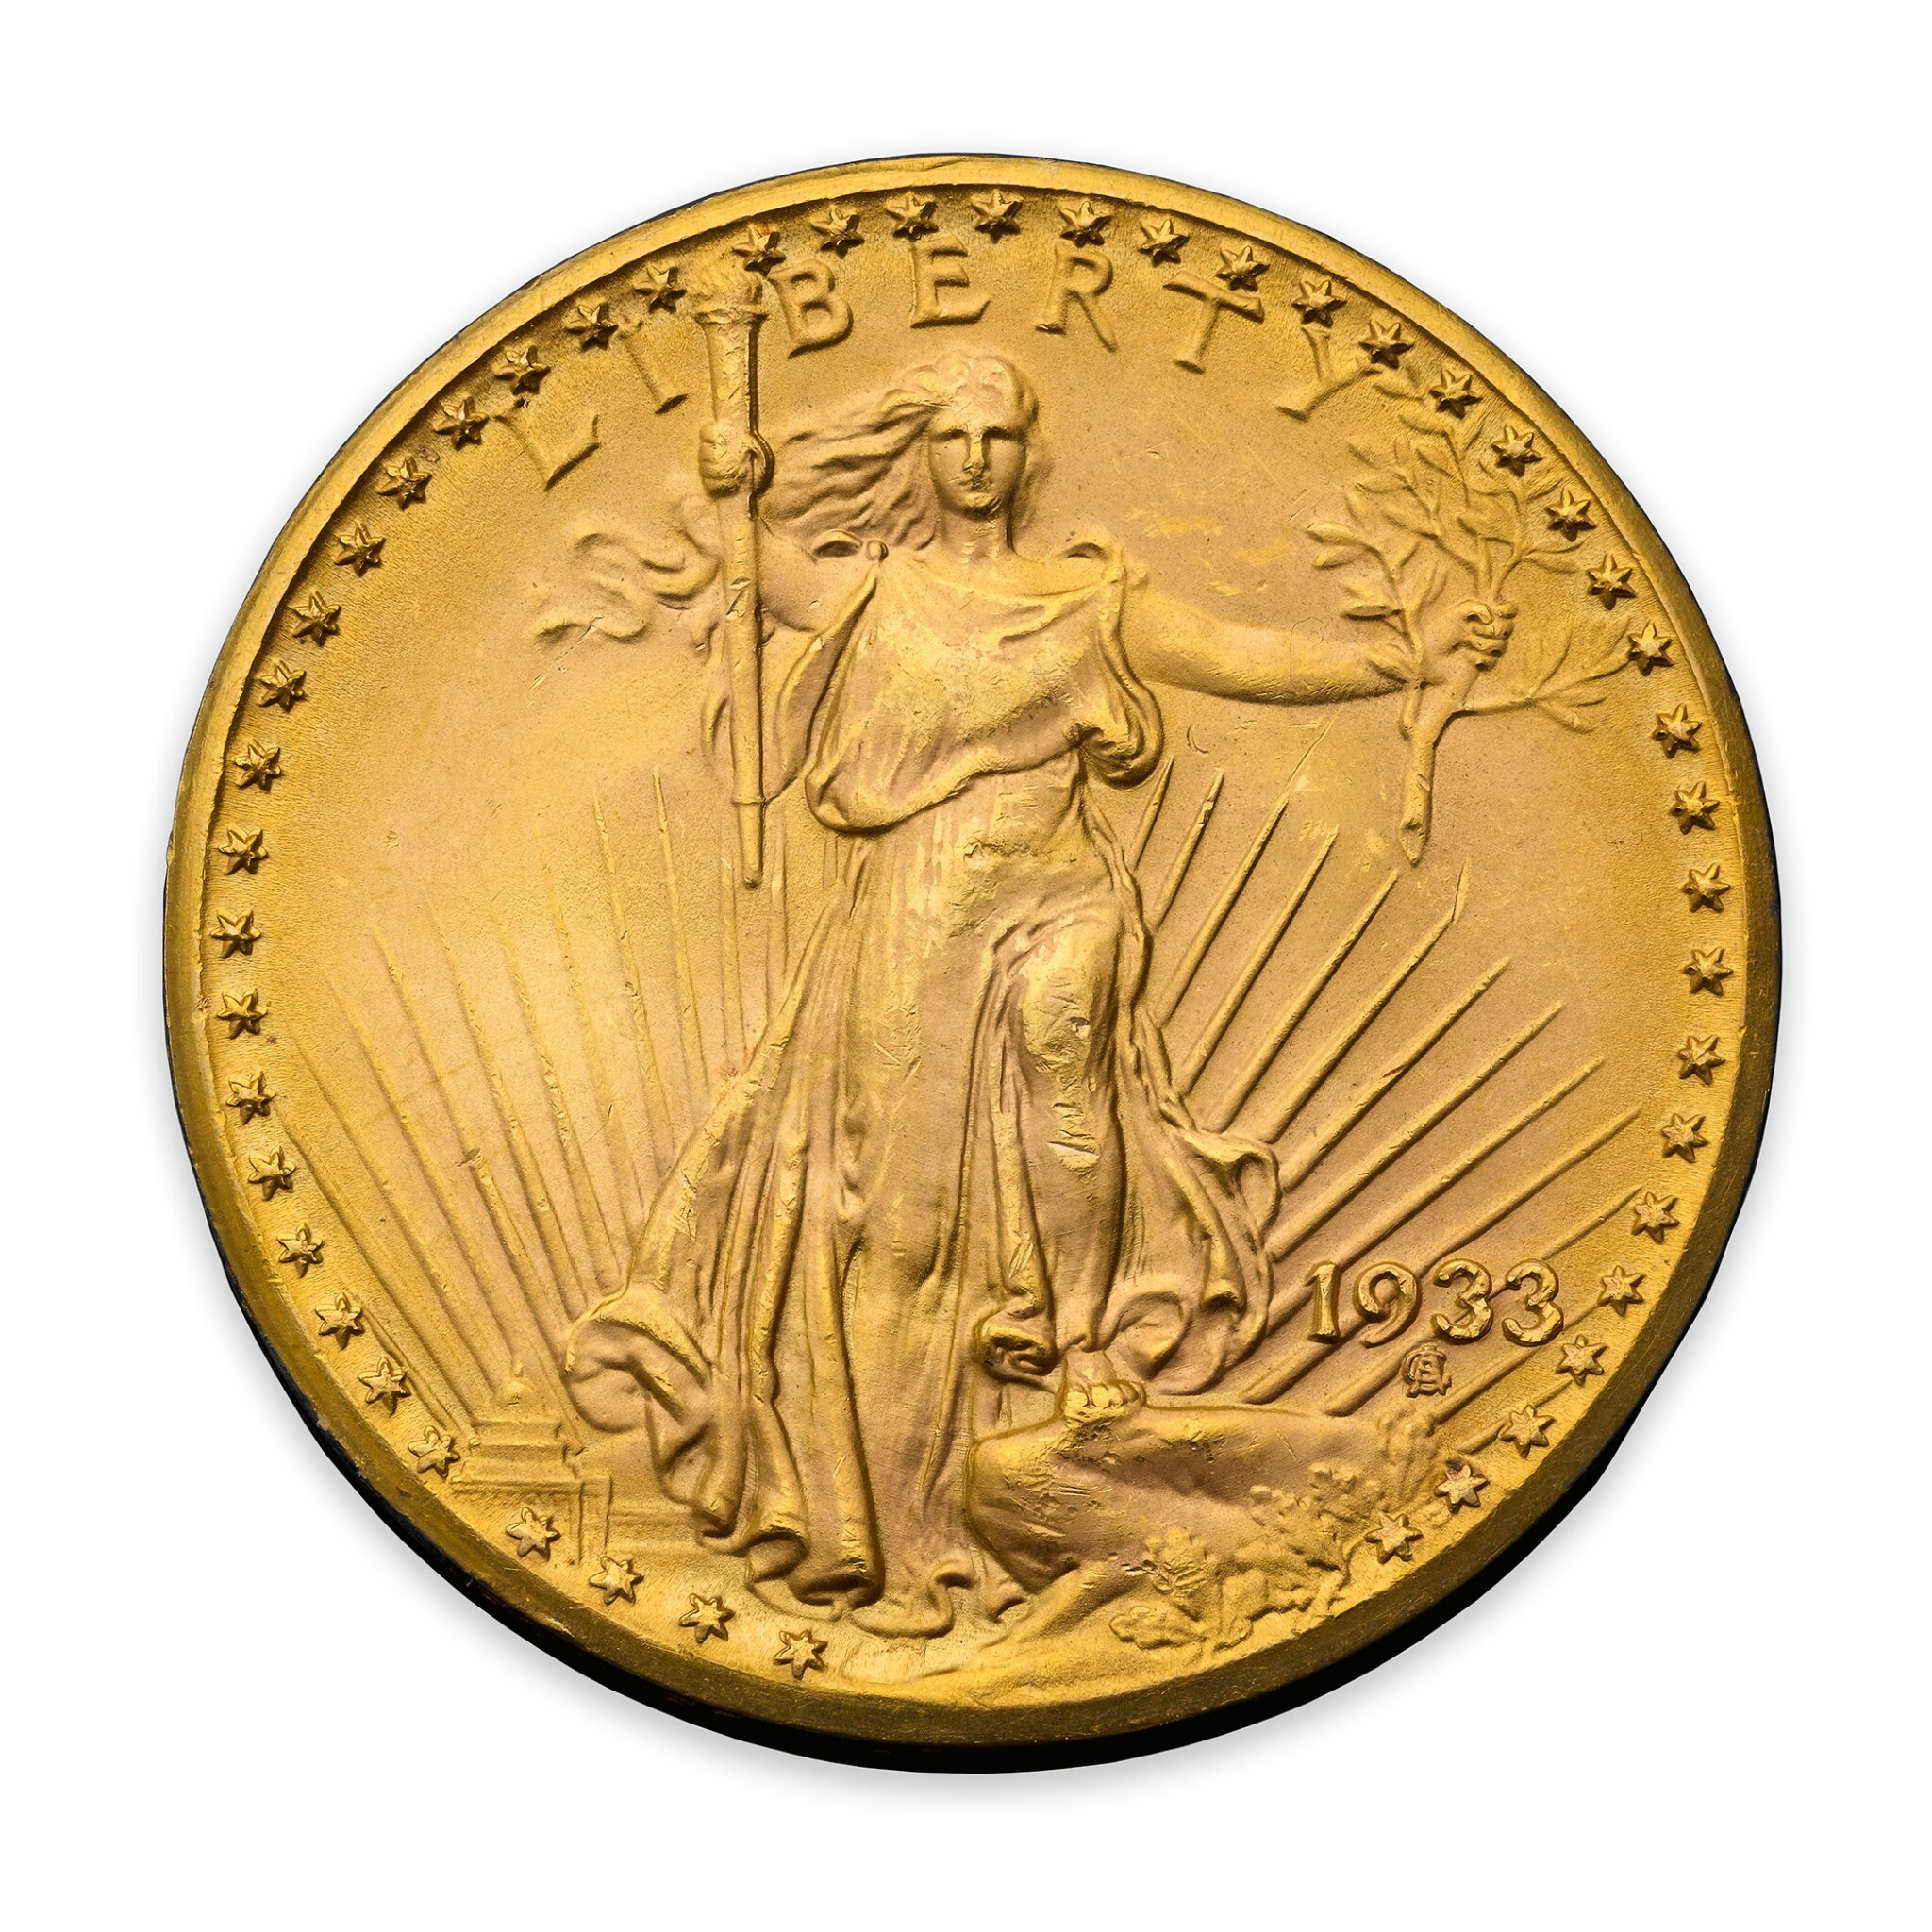 View full screen - View 1 of Lot 1. The 1933 Double Eagle.